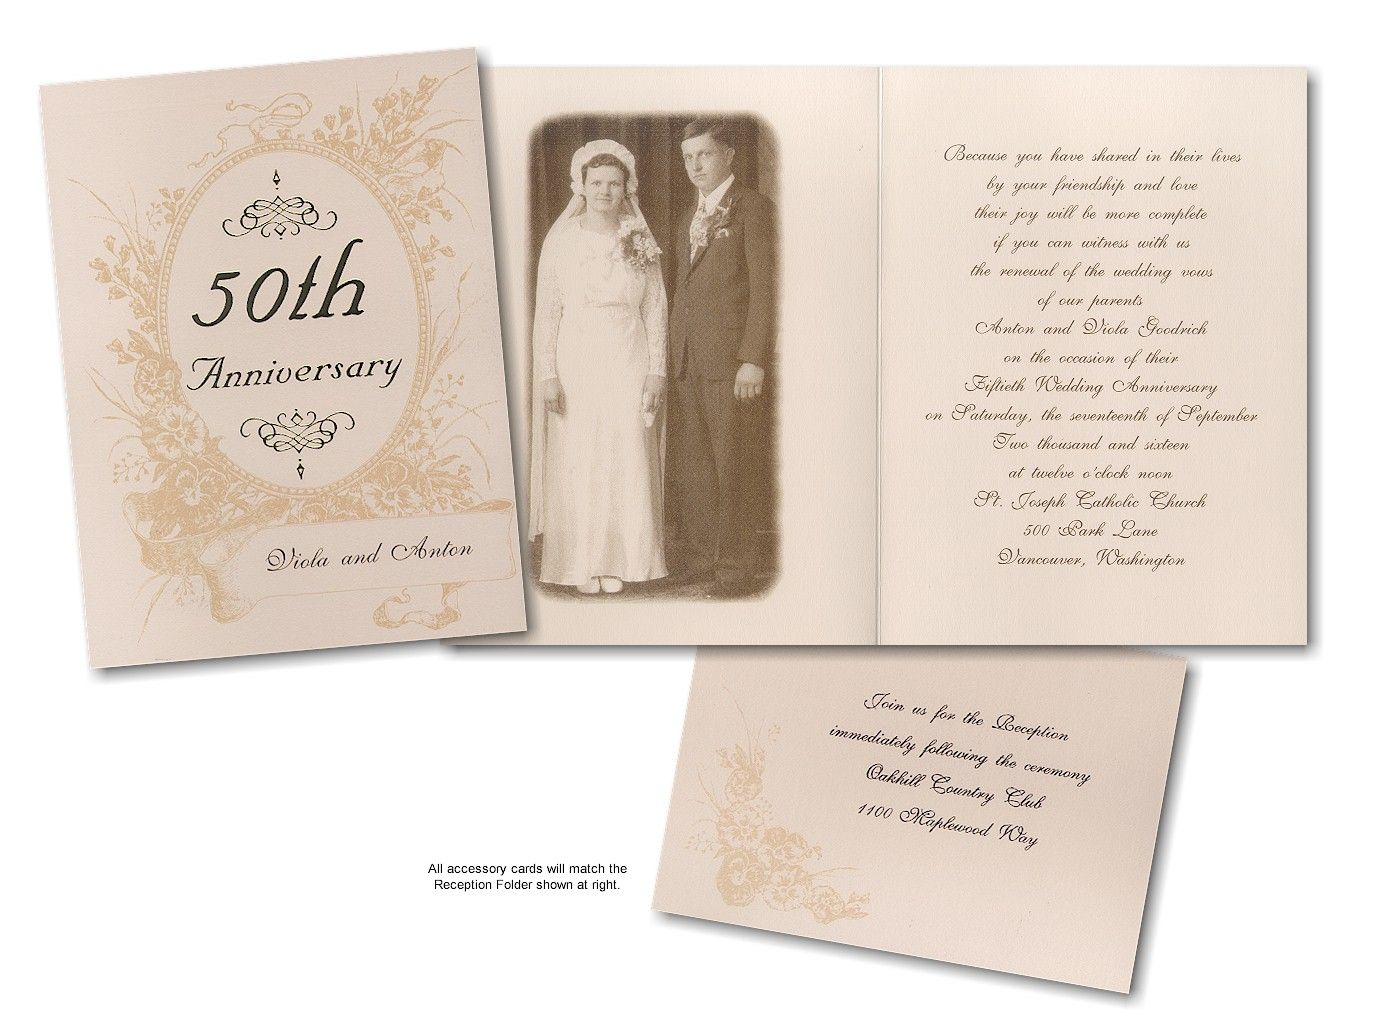 Cheap 50th Wedding Anniversary Invitations: Reflections 50th Anniversary Invitation